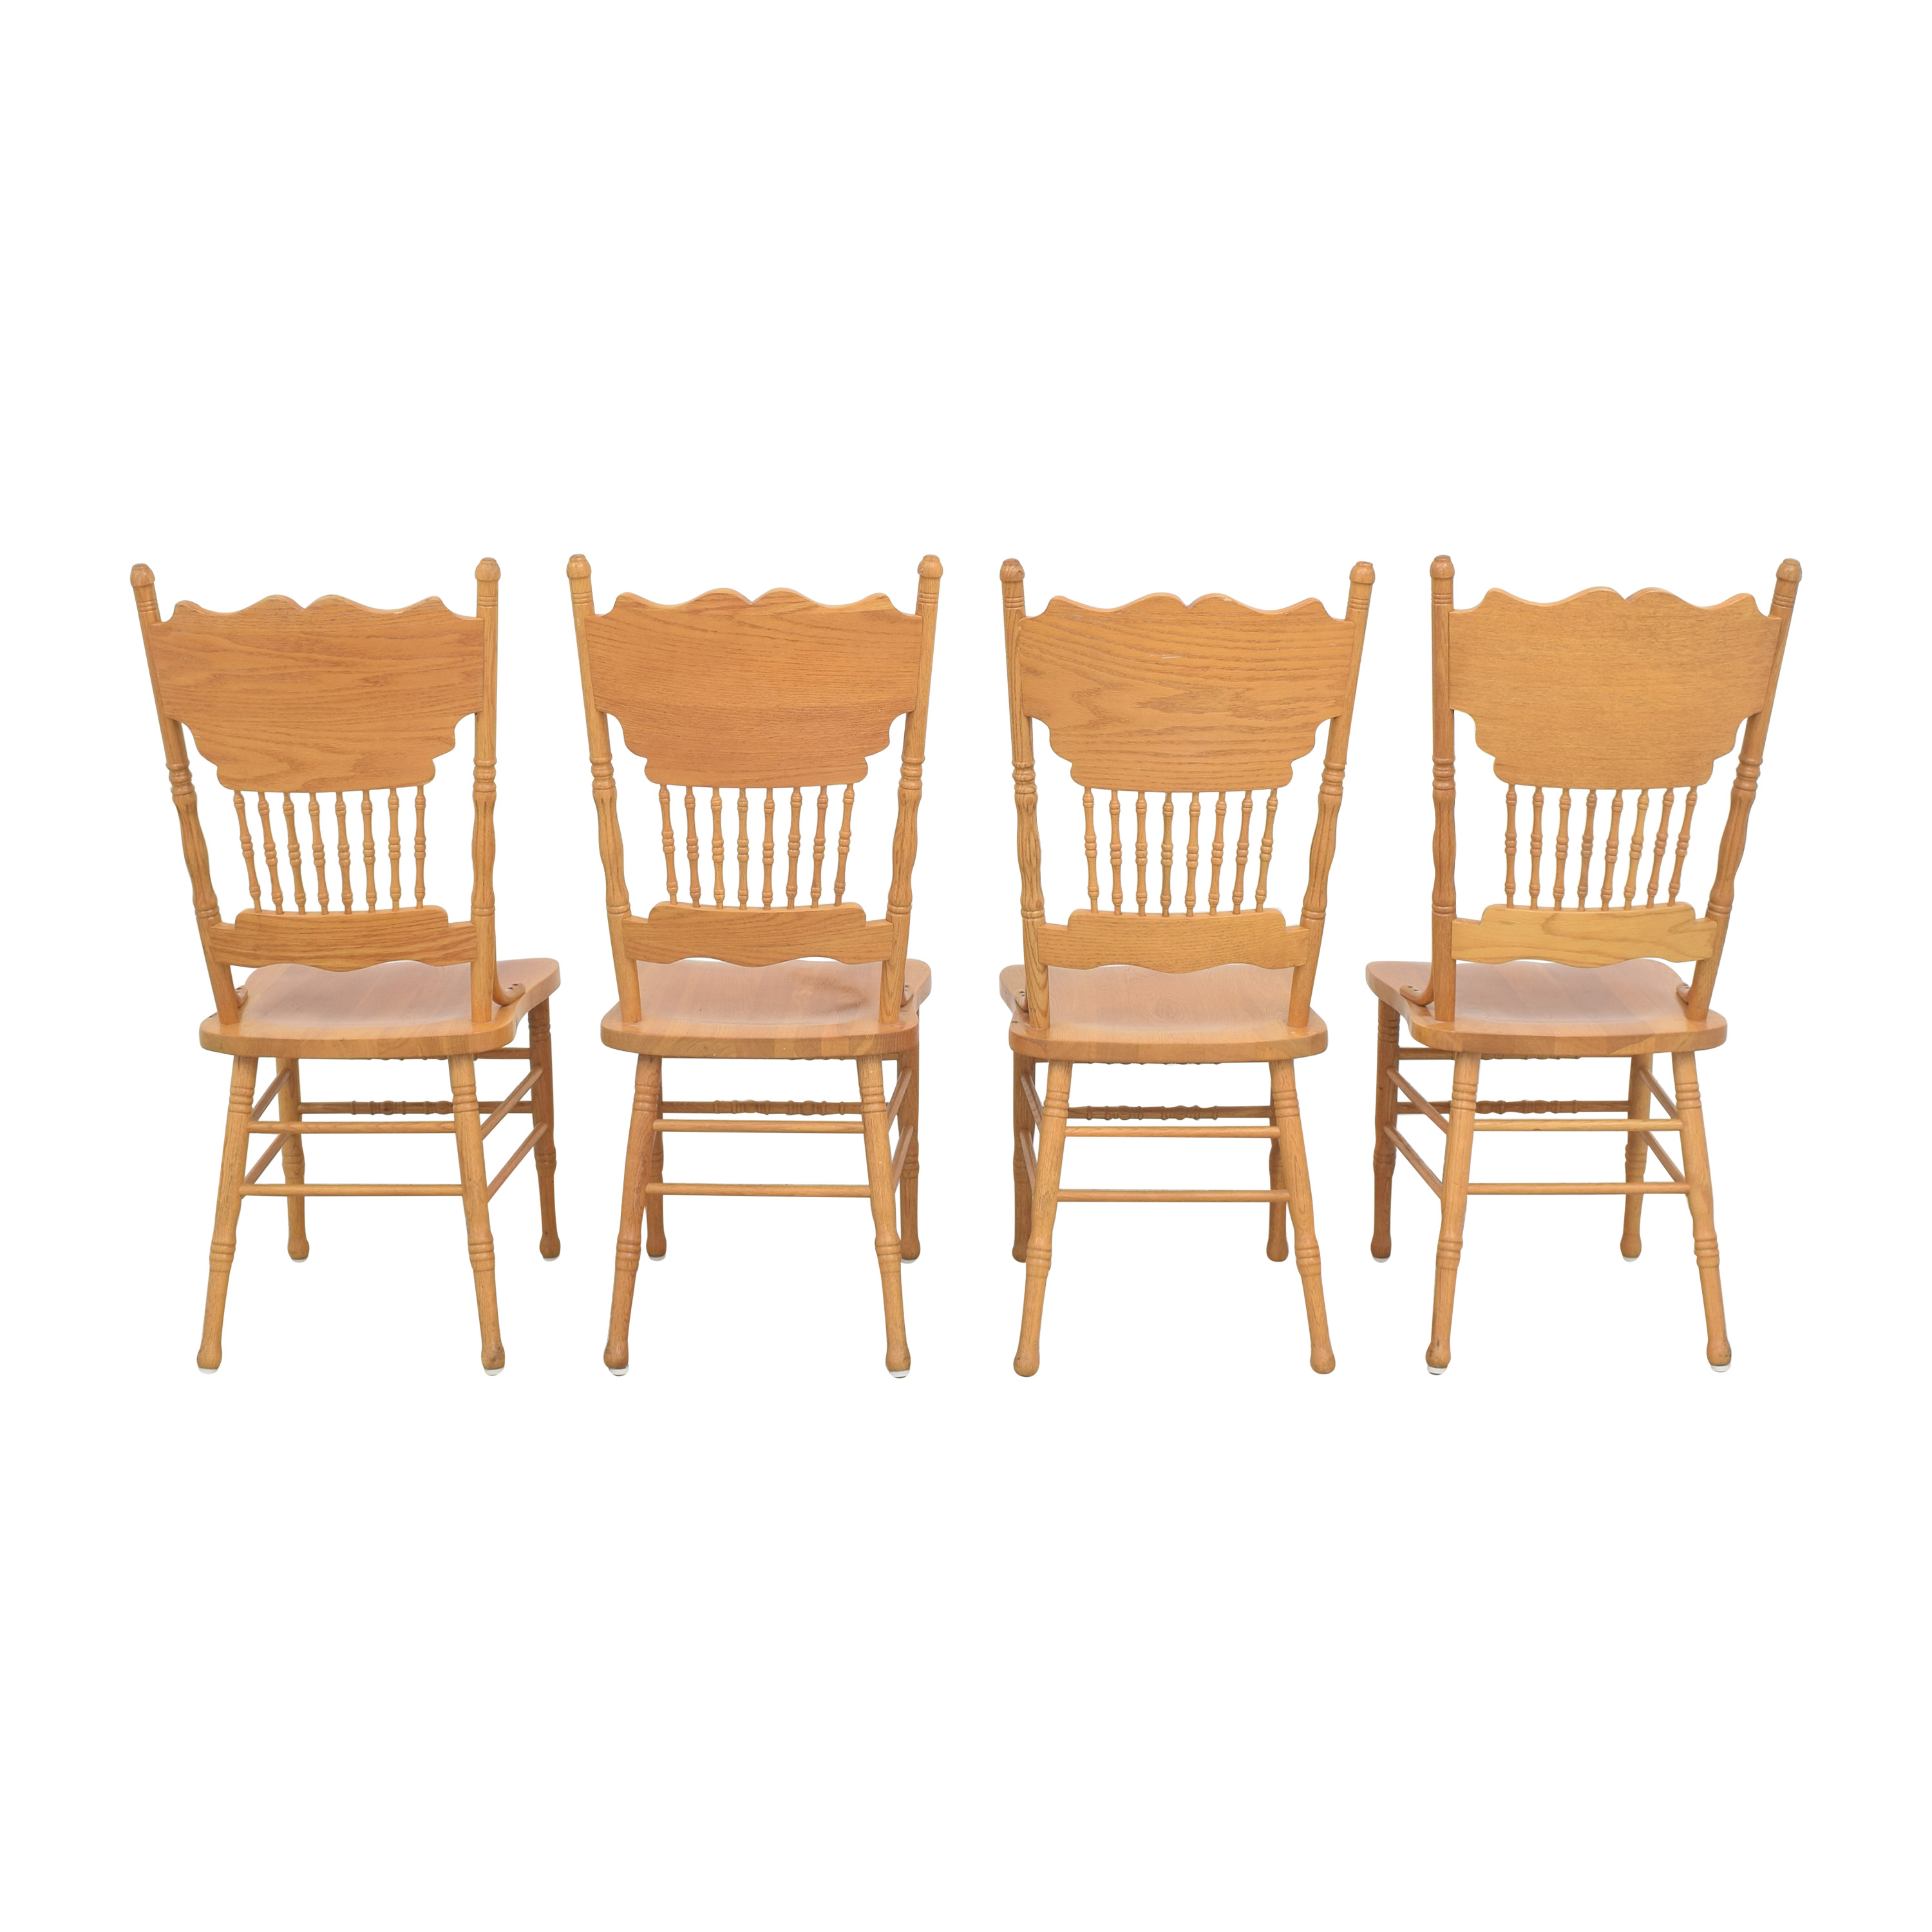 A-America Wood Furniture A-America Wood Carved Dining Chairs used